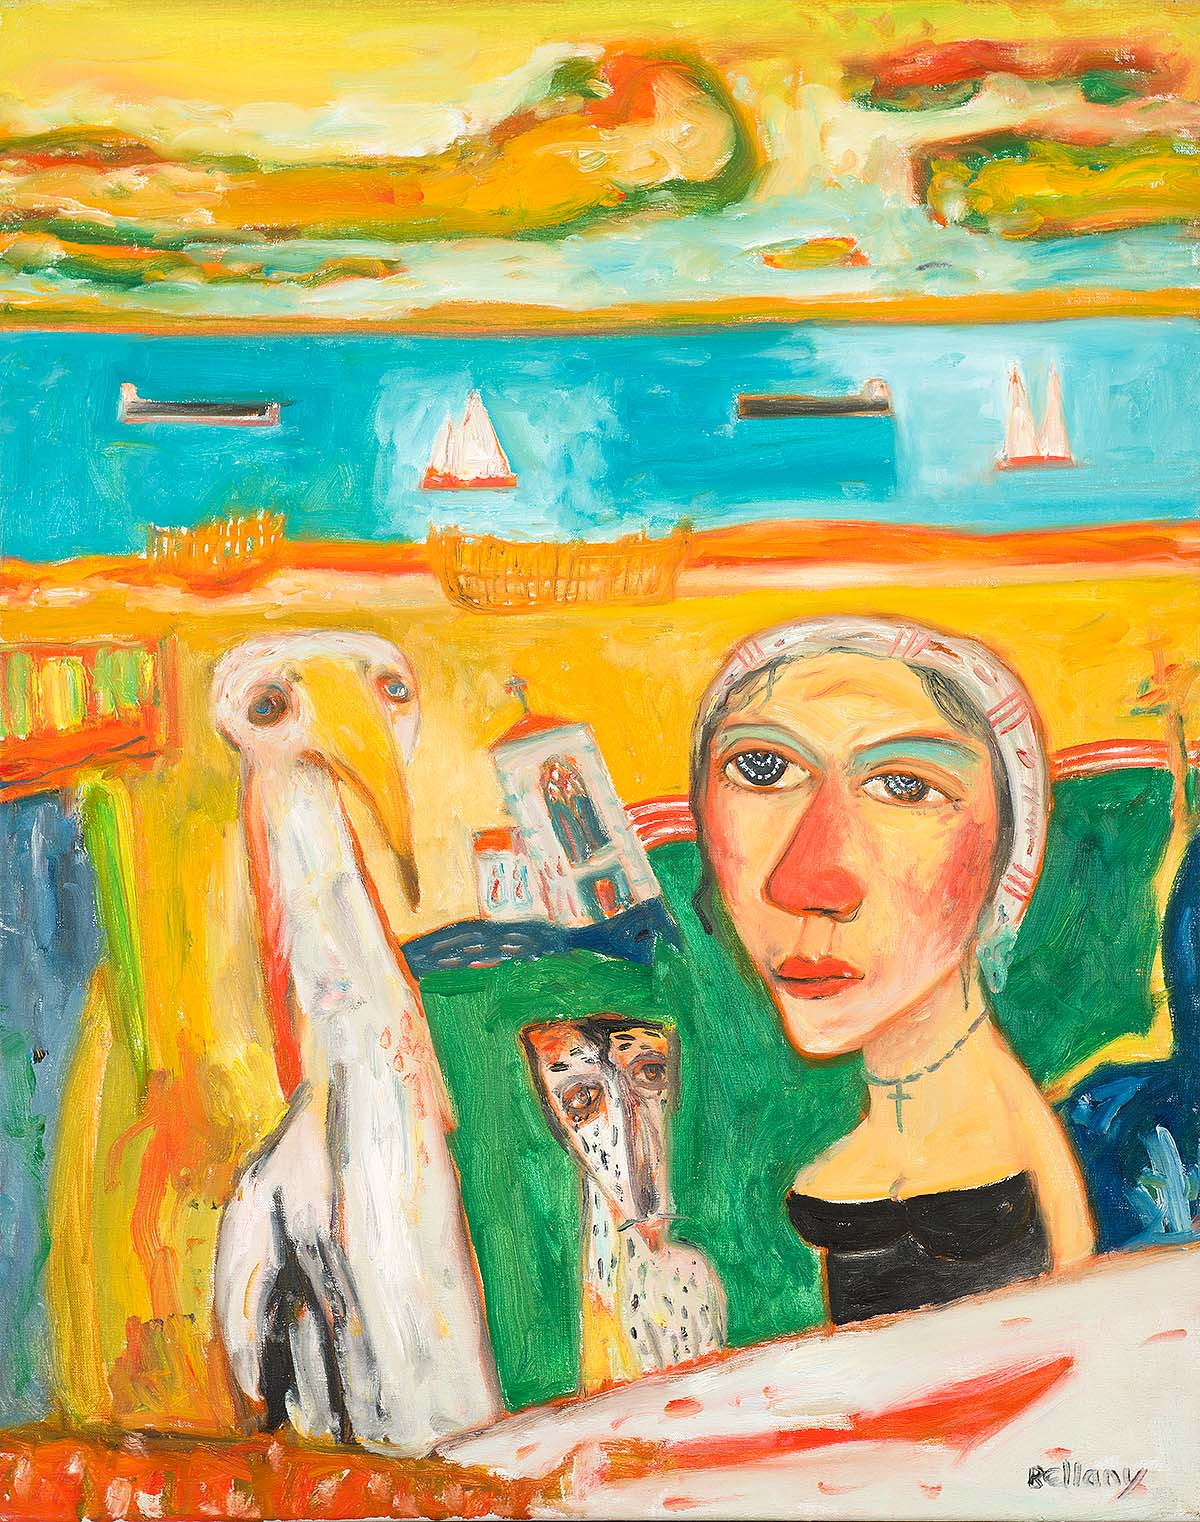 John Bellany - By the Sea, oil on canvas